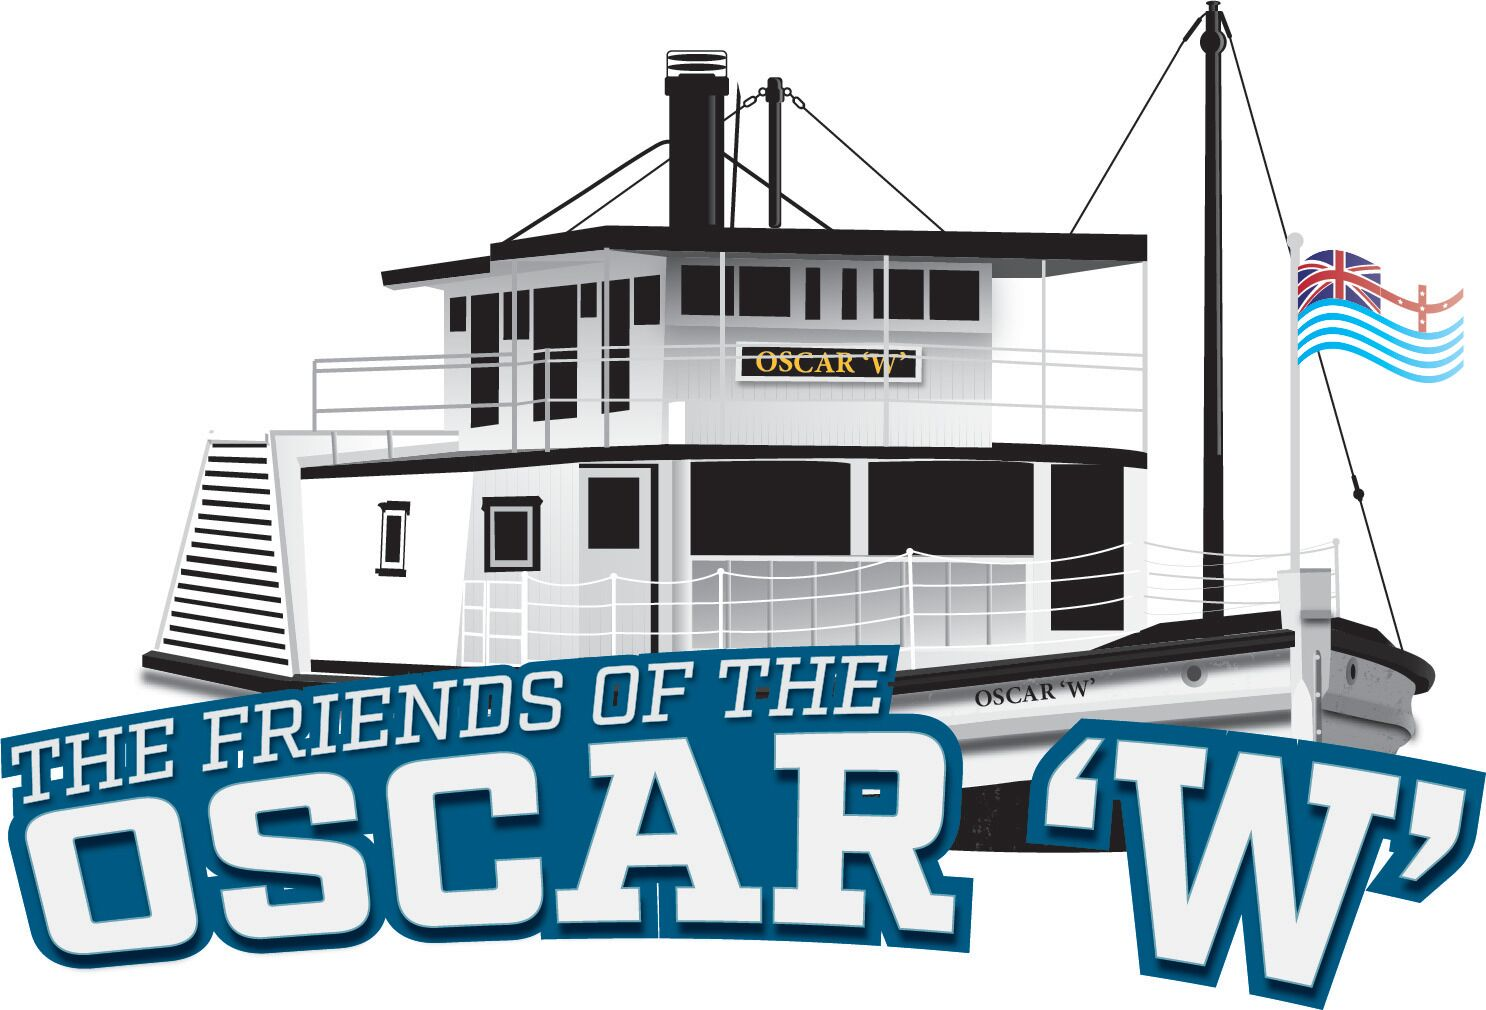 The Friends of the PS Oscar 'W'